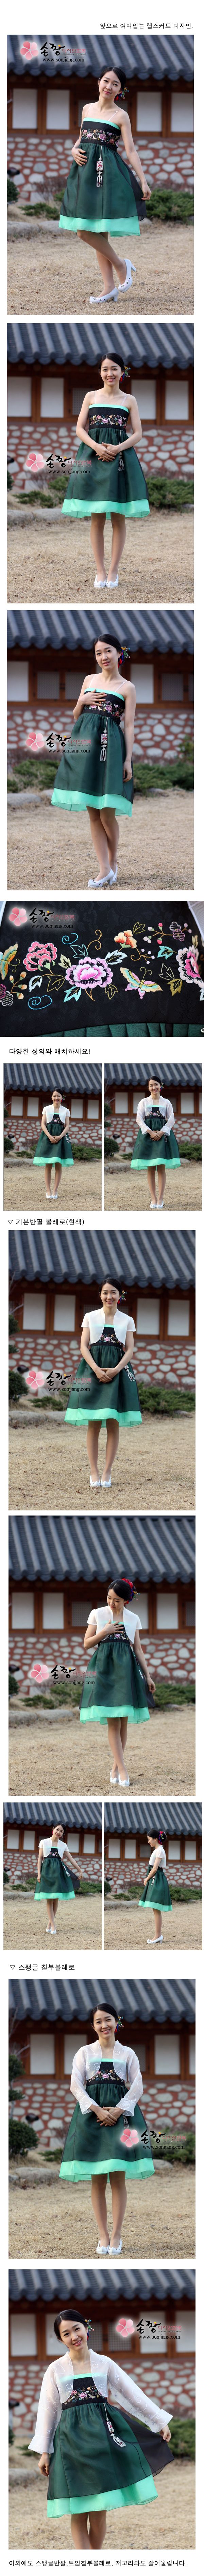 hanbok-korean traditional dress,modern hanbok,mini hanbok,fusion hanbok,korean prom dress,short hanbok